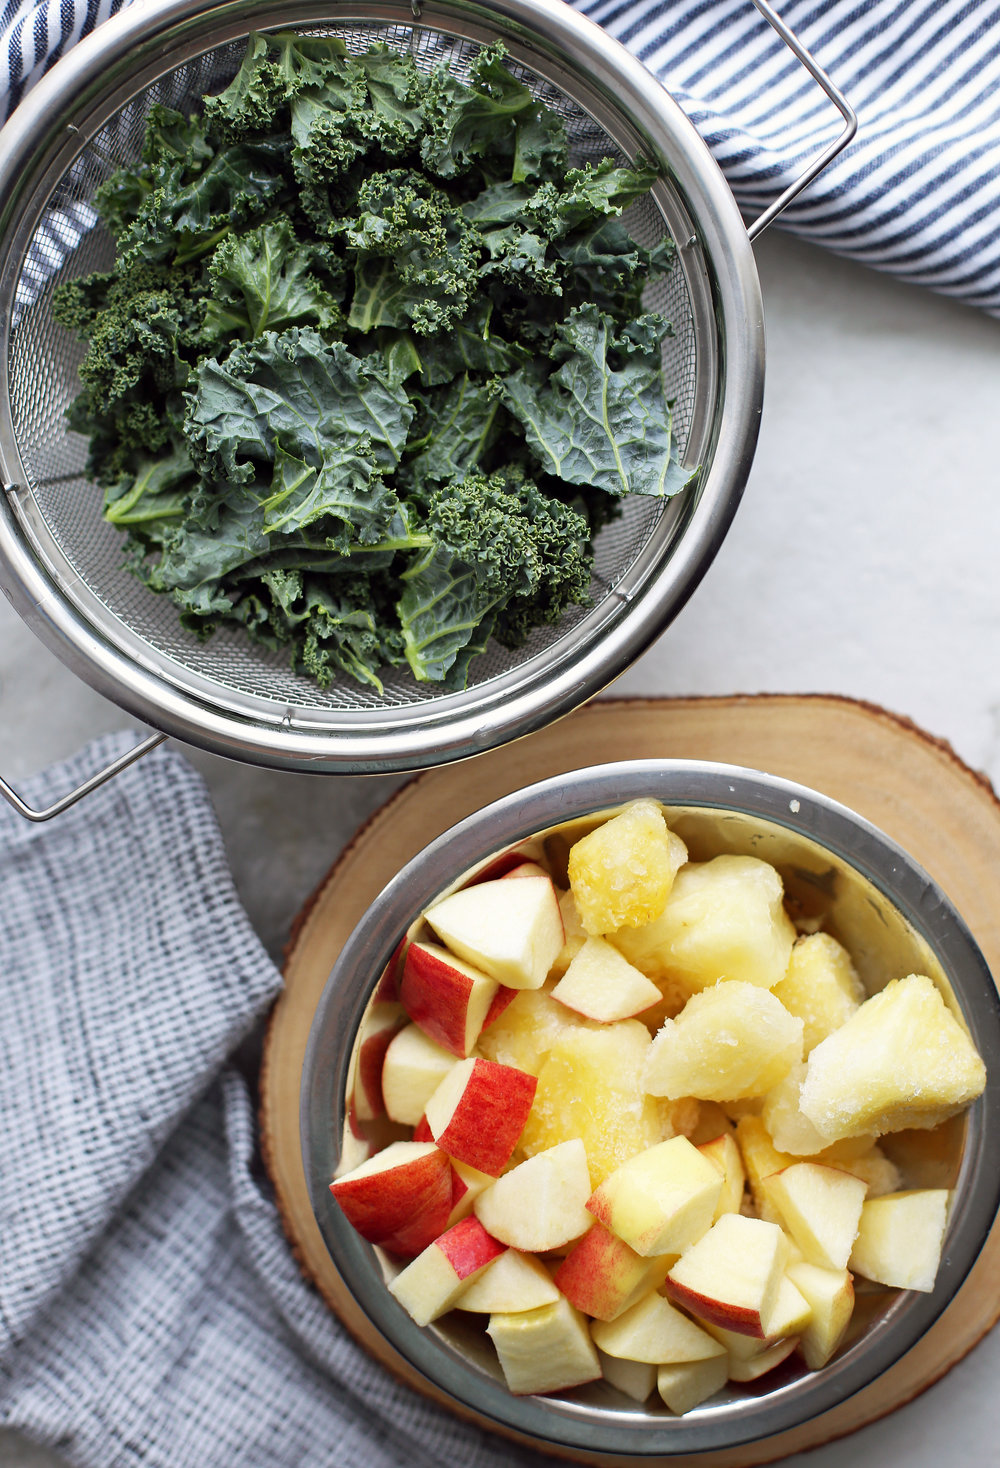 A bowl containing frozen pineapple chunks and chopped apples and a stainer containing chopped kale.